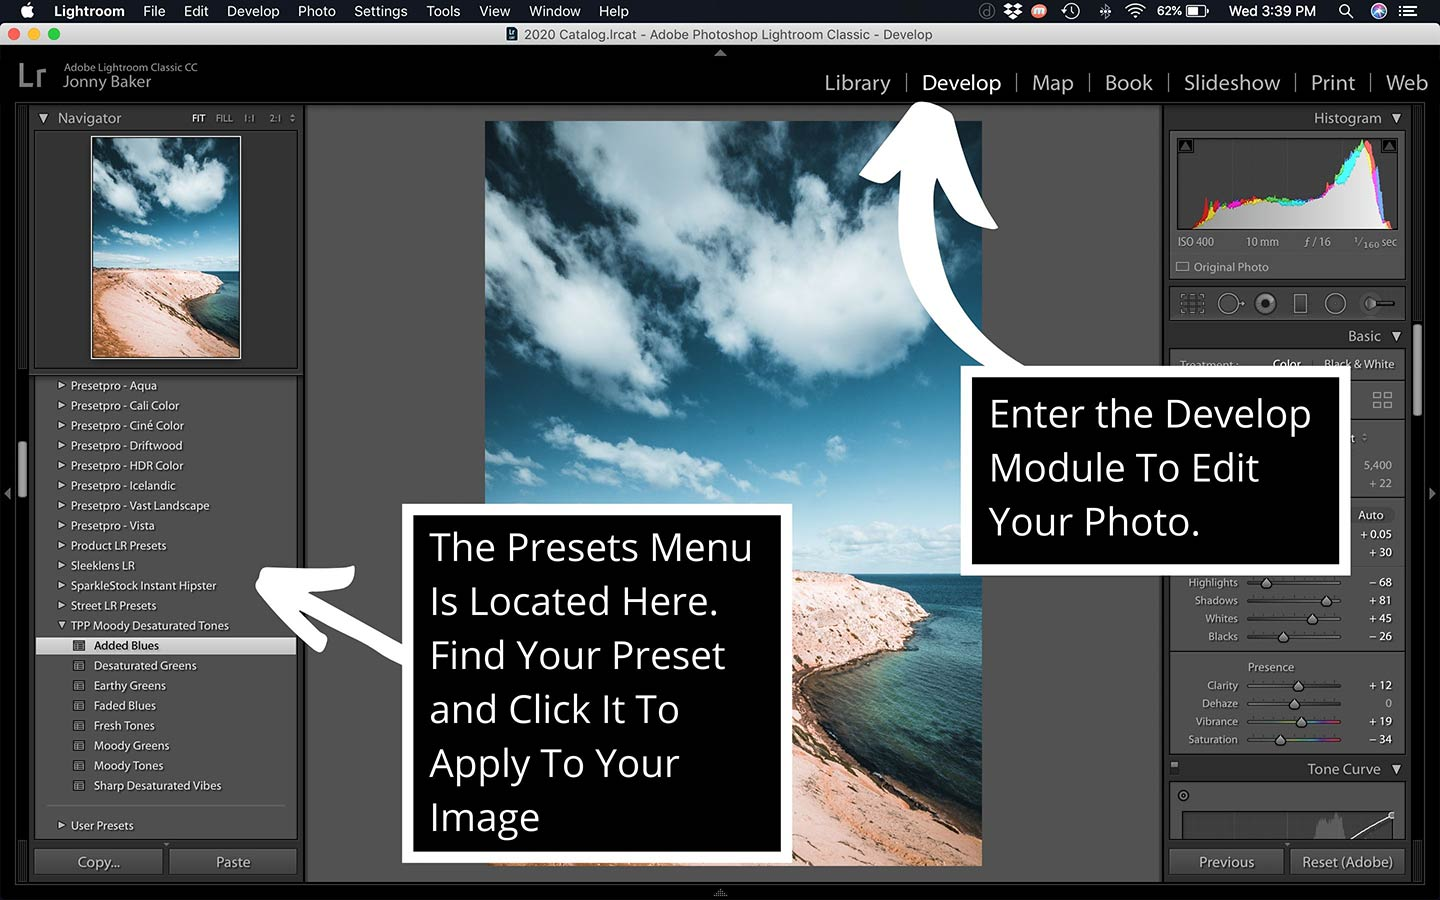 A printscreen that shows how to apply a preset using the desktop program an important part of this Lightroom presets guide.